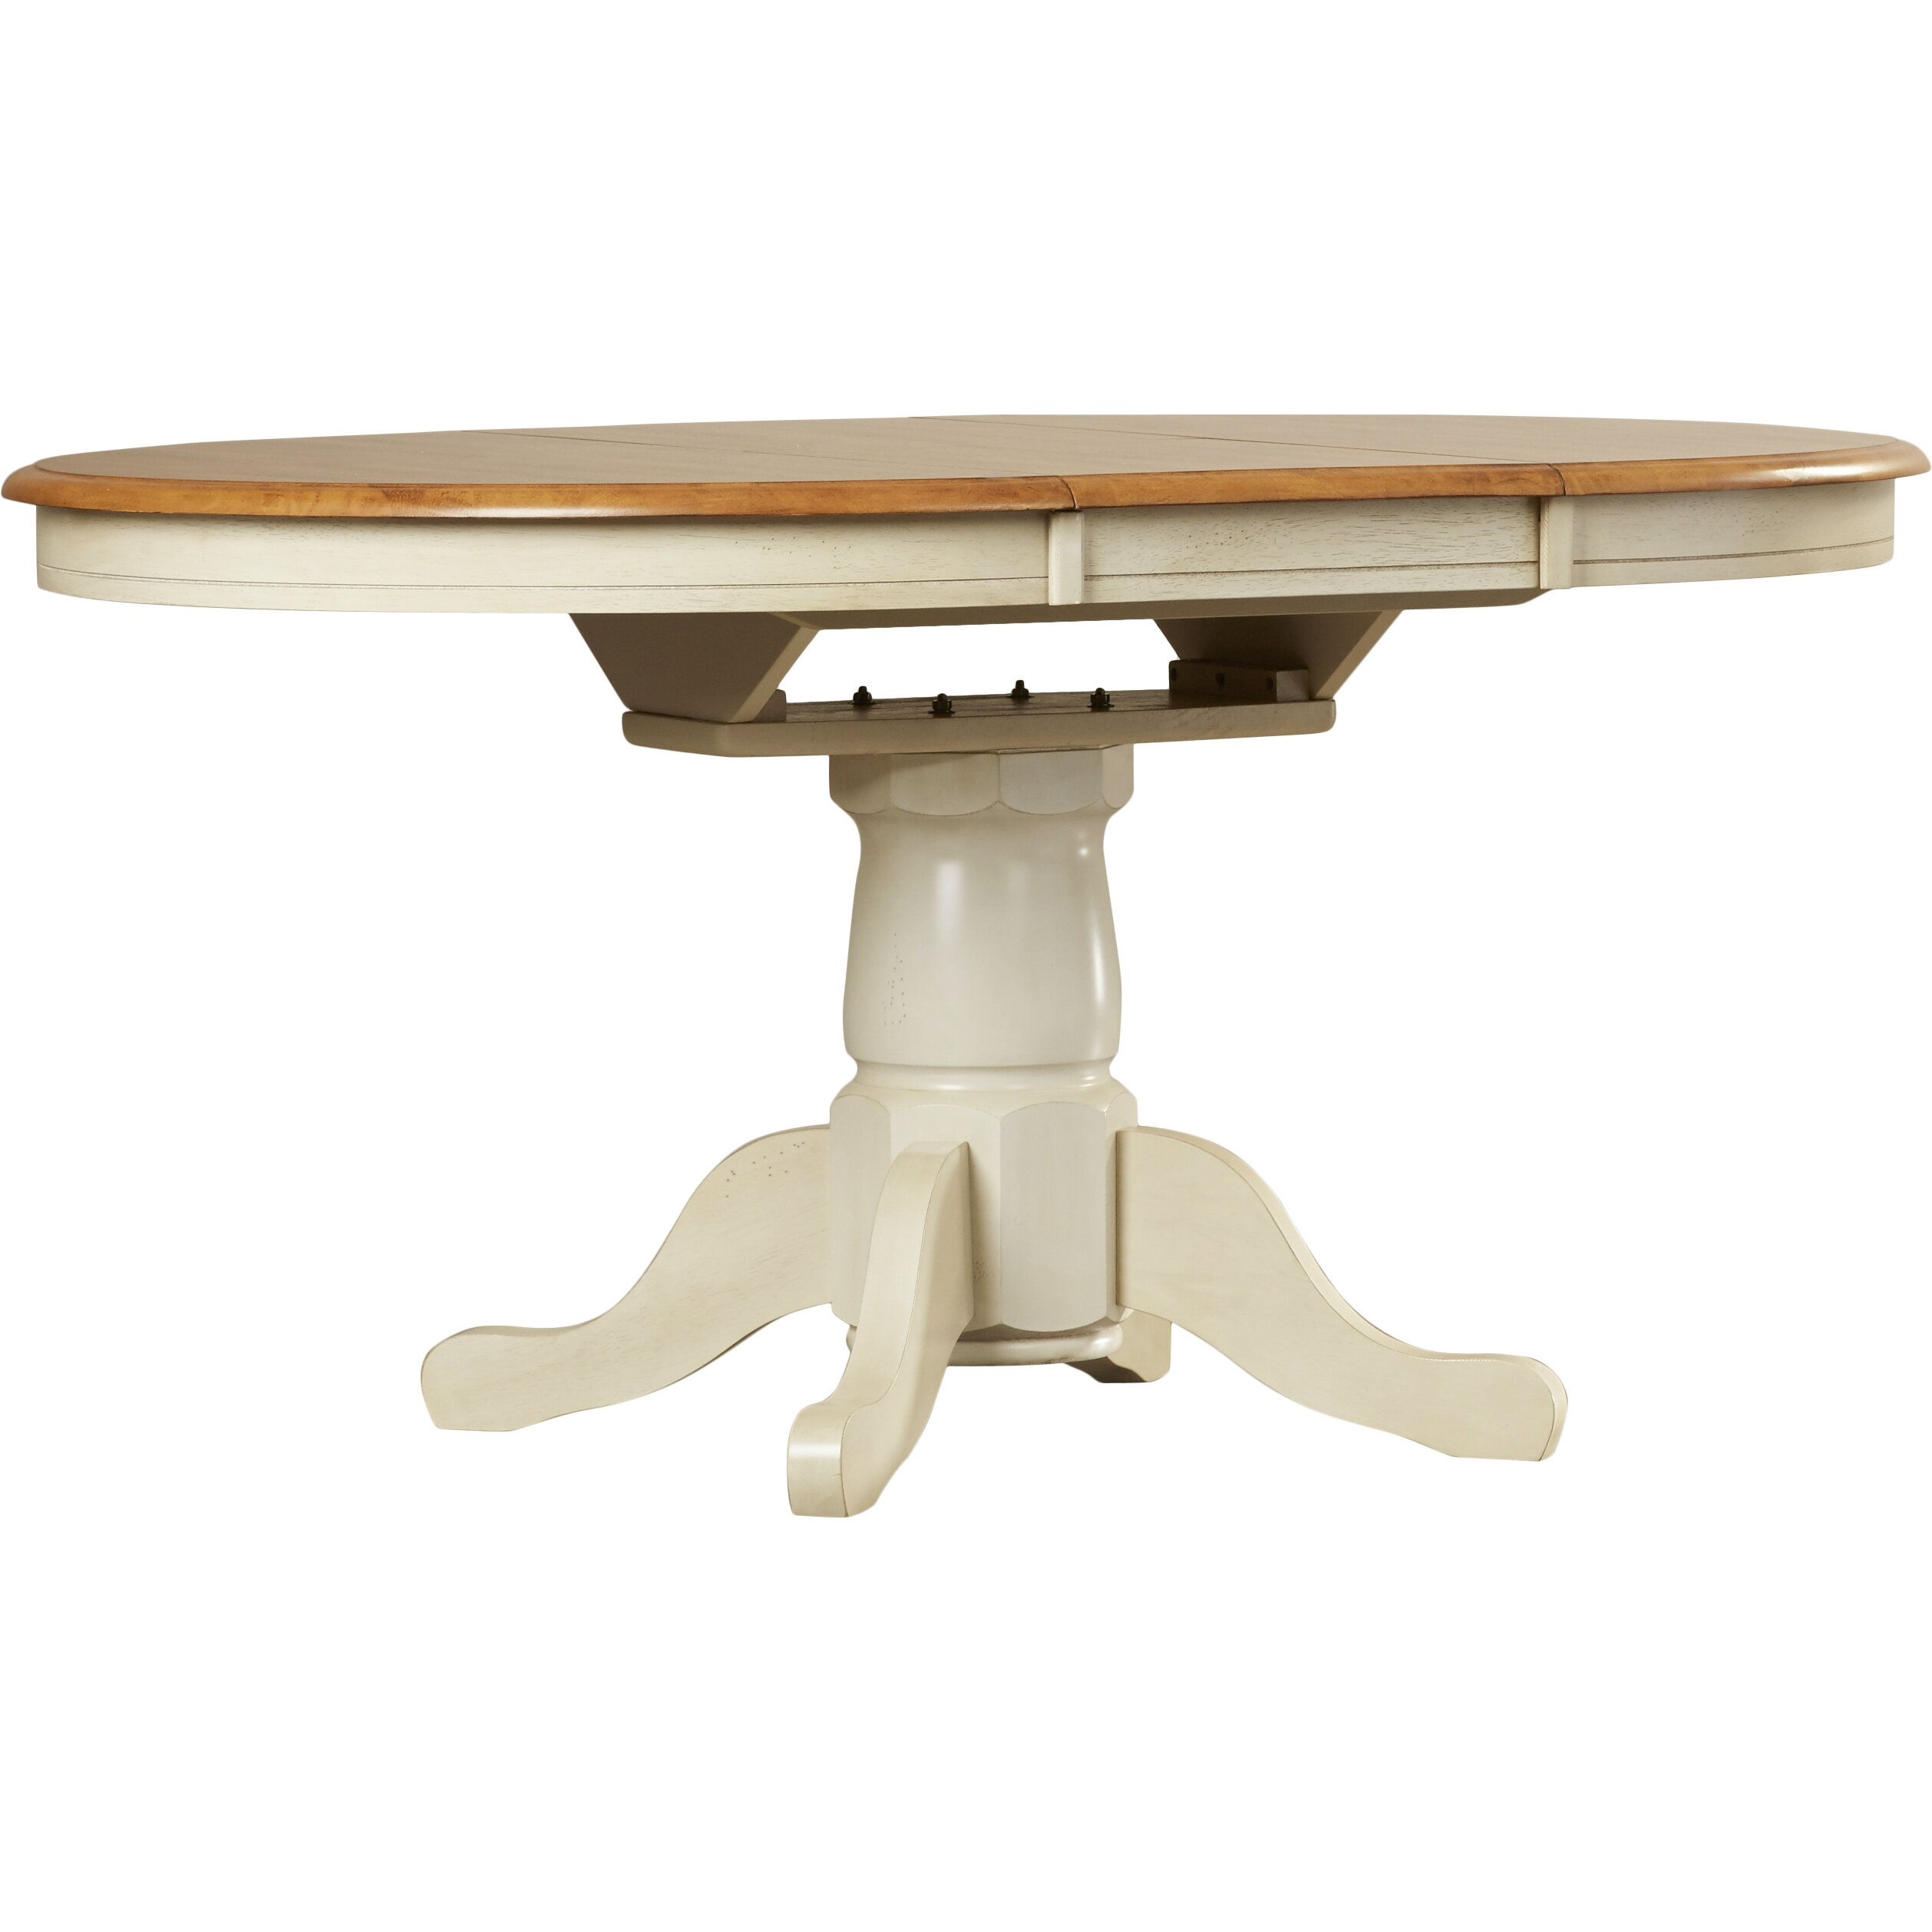 Loon Peak Clarno Extendable Dining Table amp Reviews Wayfair : Loon Peak Clarno Extendable Dining Table LOON2185 from www.wayfair.com size 2517 x 2517 jpeg 285kB